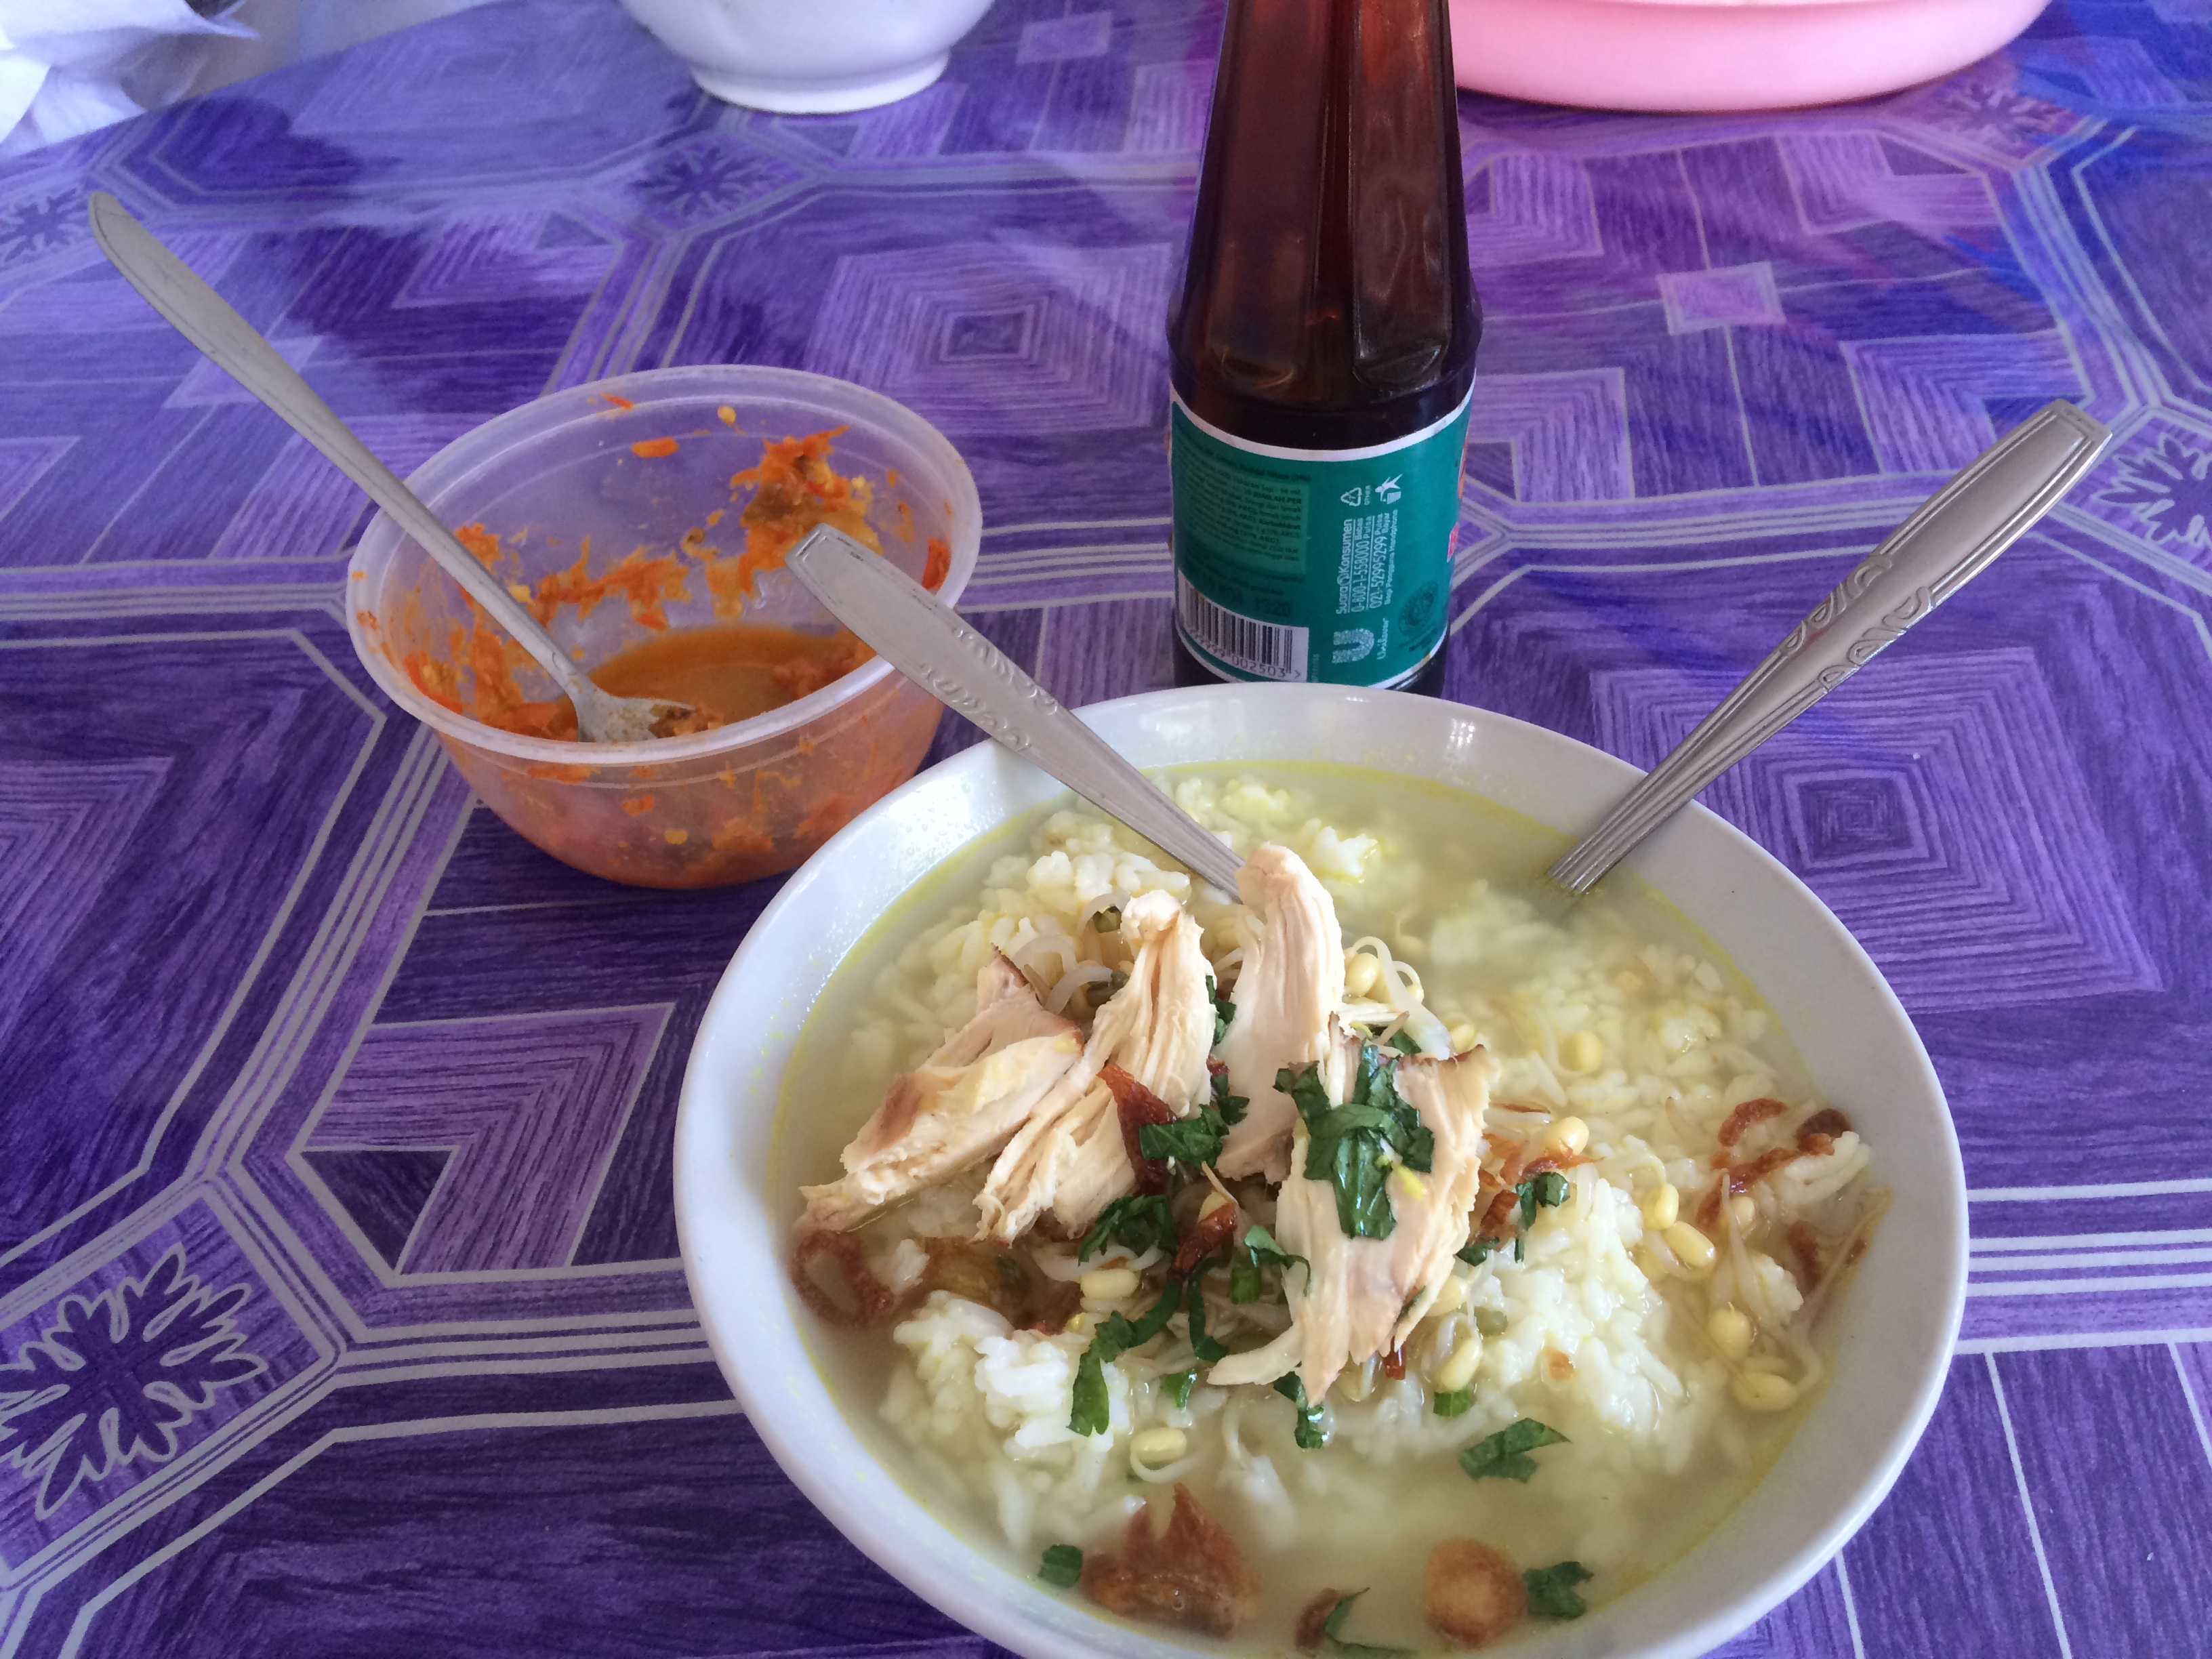 Soto Ayam: In solo, a hearty dish with rice, chicken strips, and chicken broth.